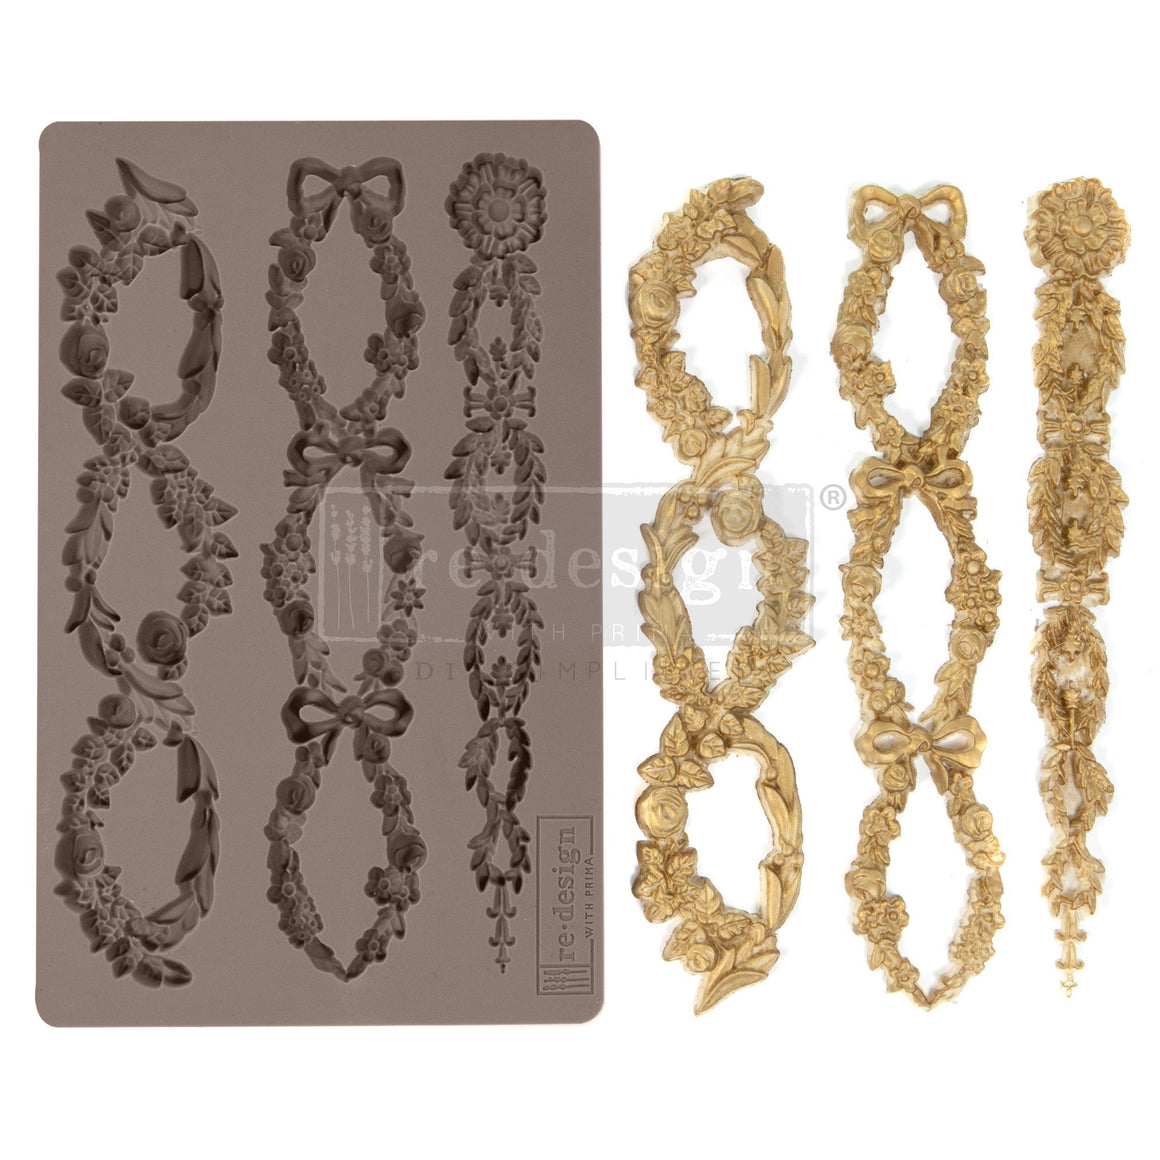 Floral Chain mould by Redesign with Prima